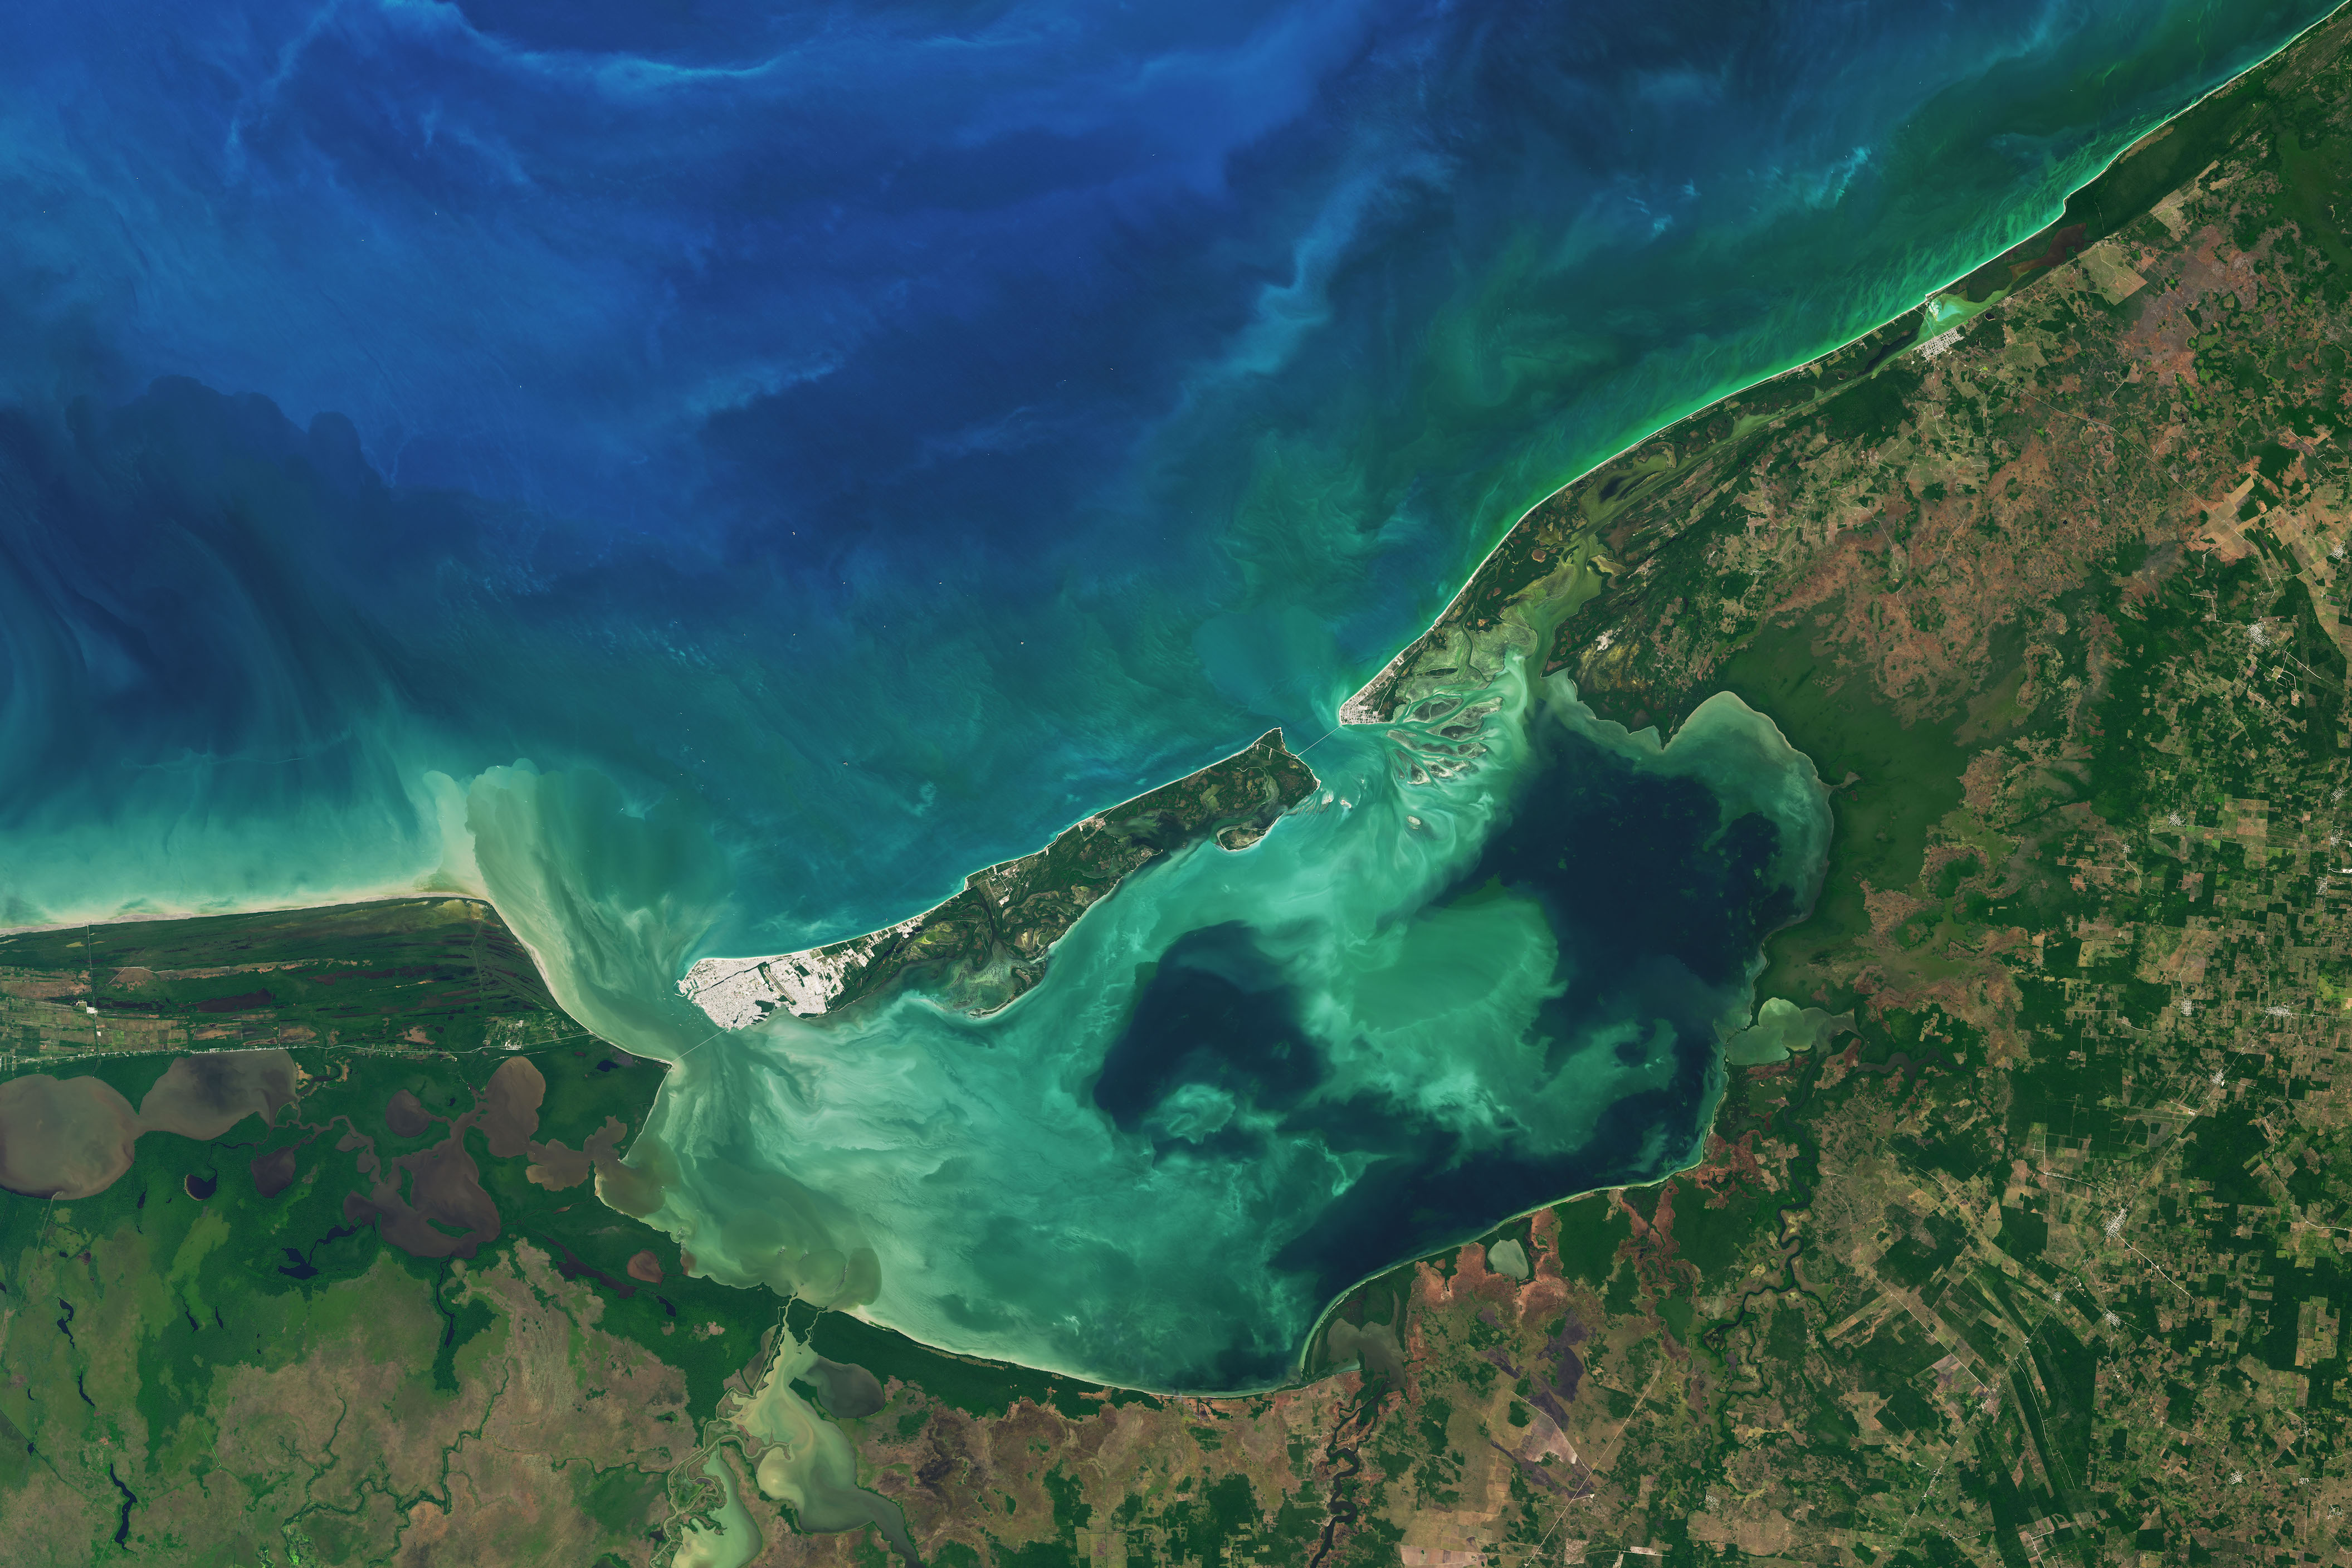 Today's Image of the Day comes thanks to the NASA Earth Observatory and features a look at the swirling, aqua waters of Mexico's largest coastal lagoon.